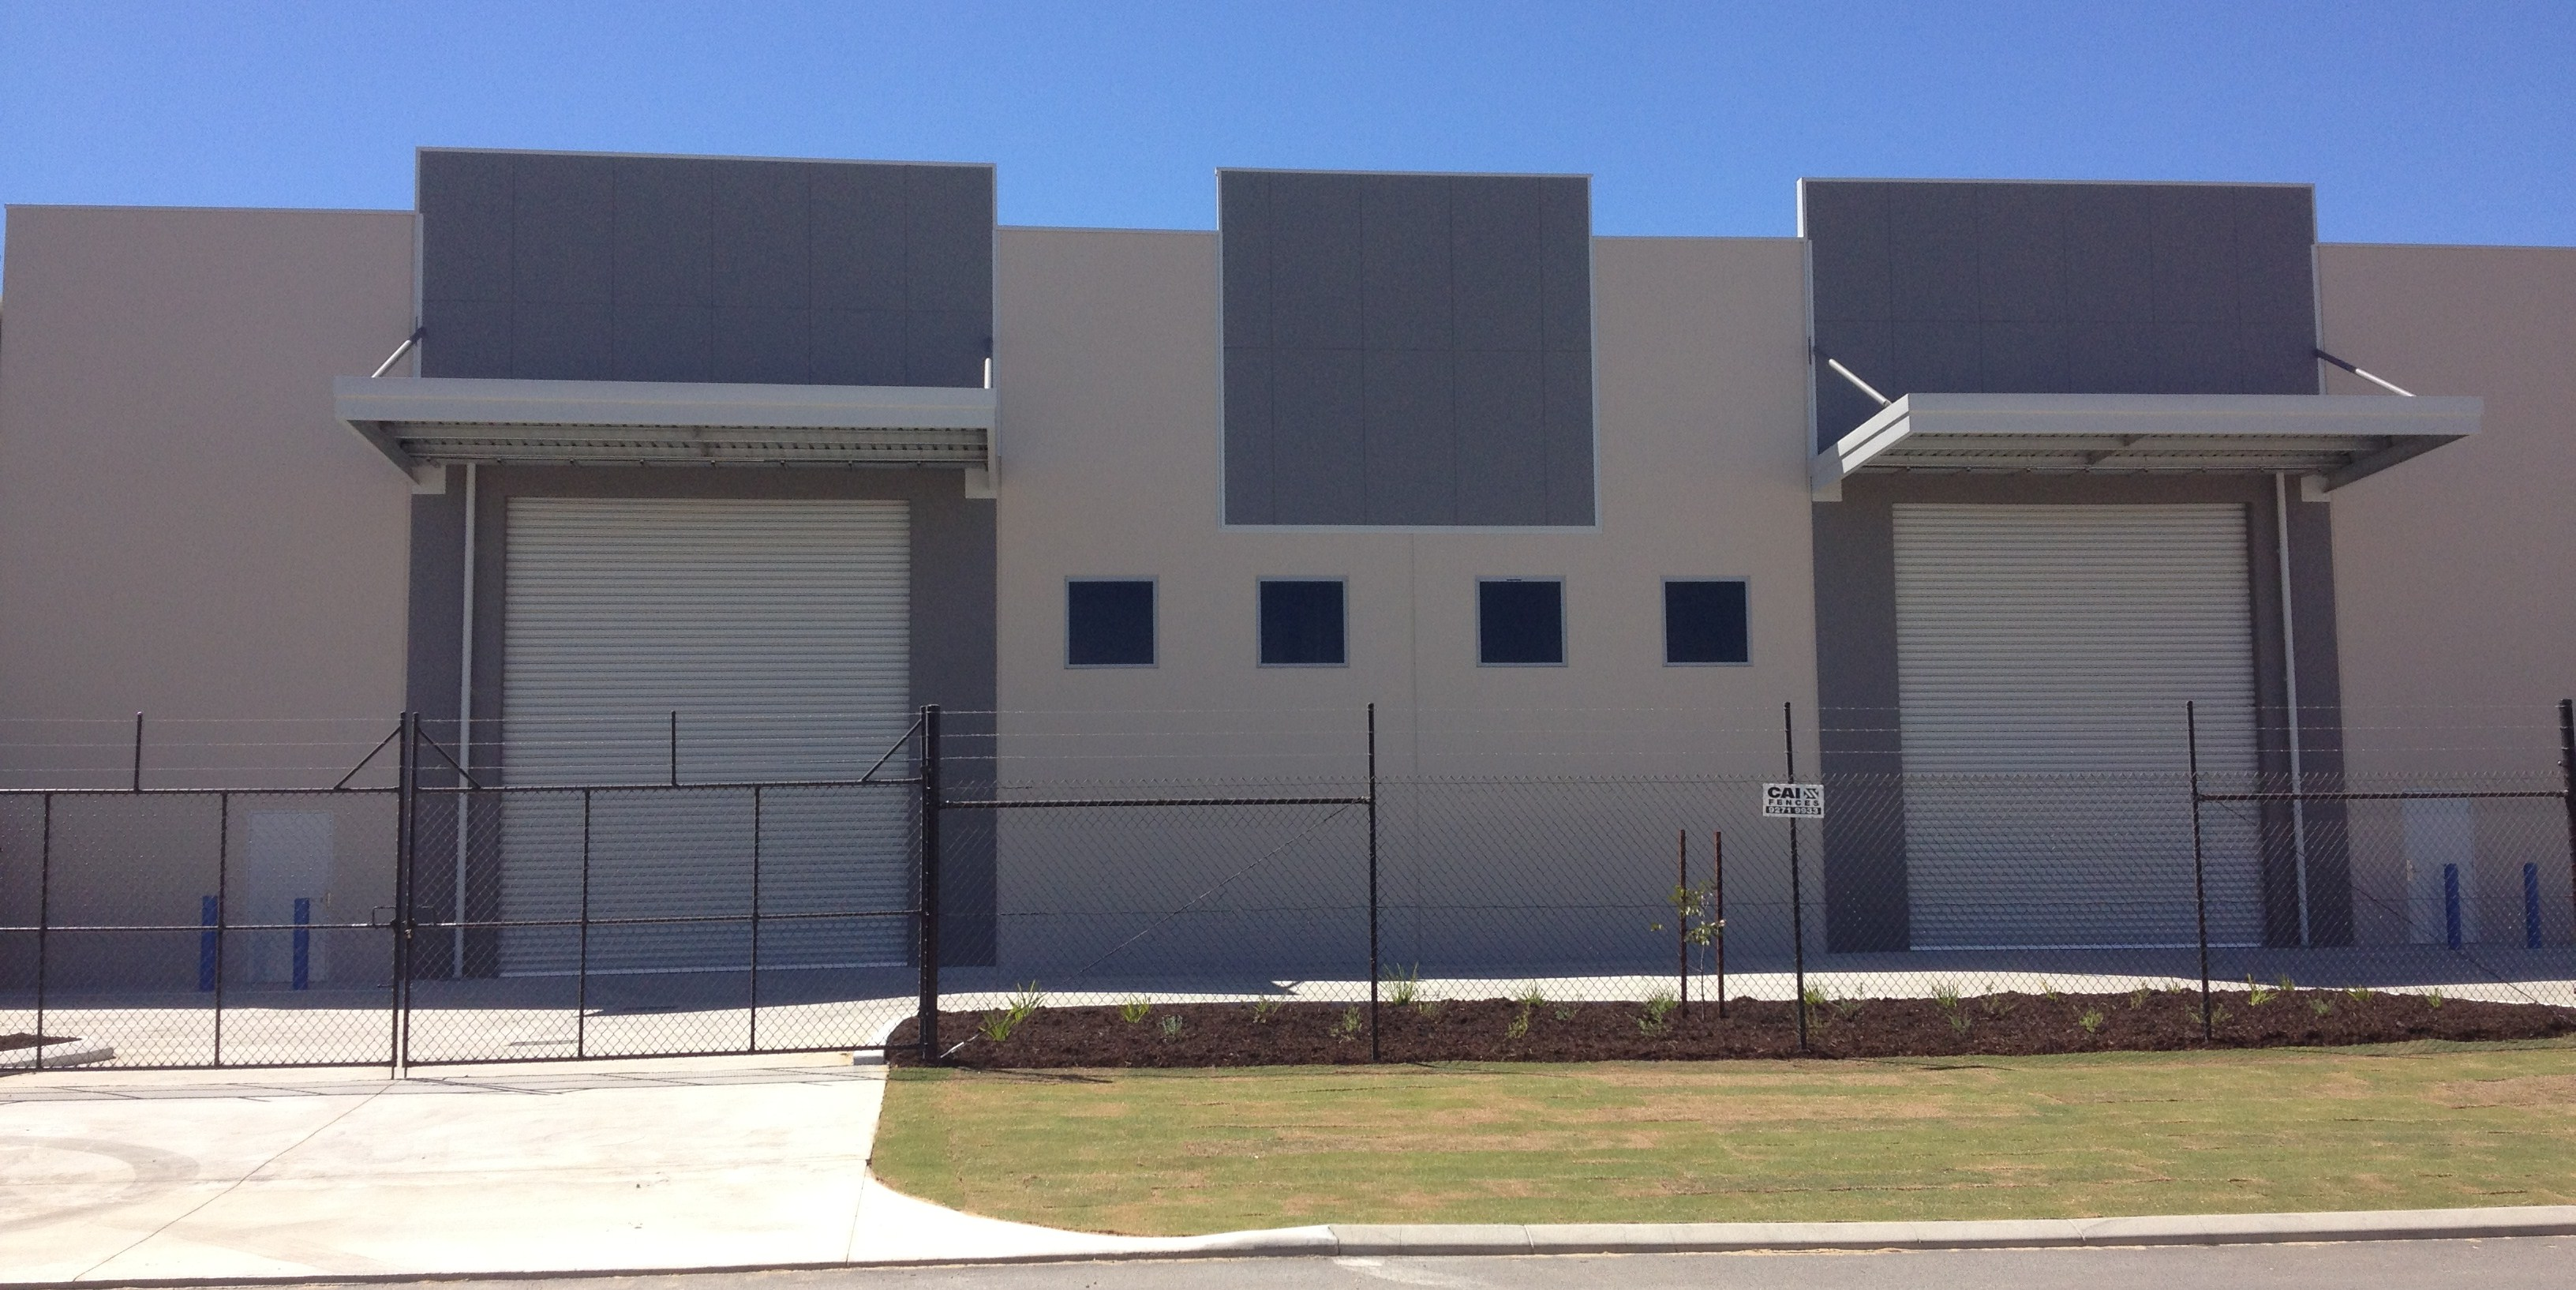 Exterior of large fenced commercial warehouse, painted in light grey with dark grey accents